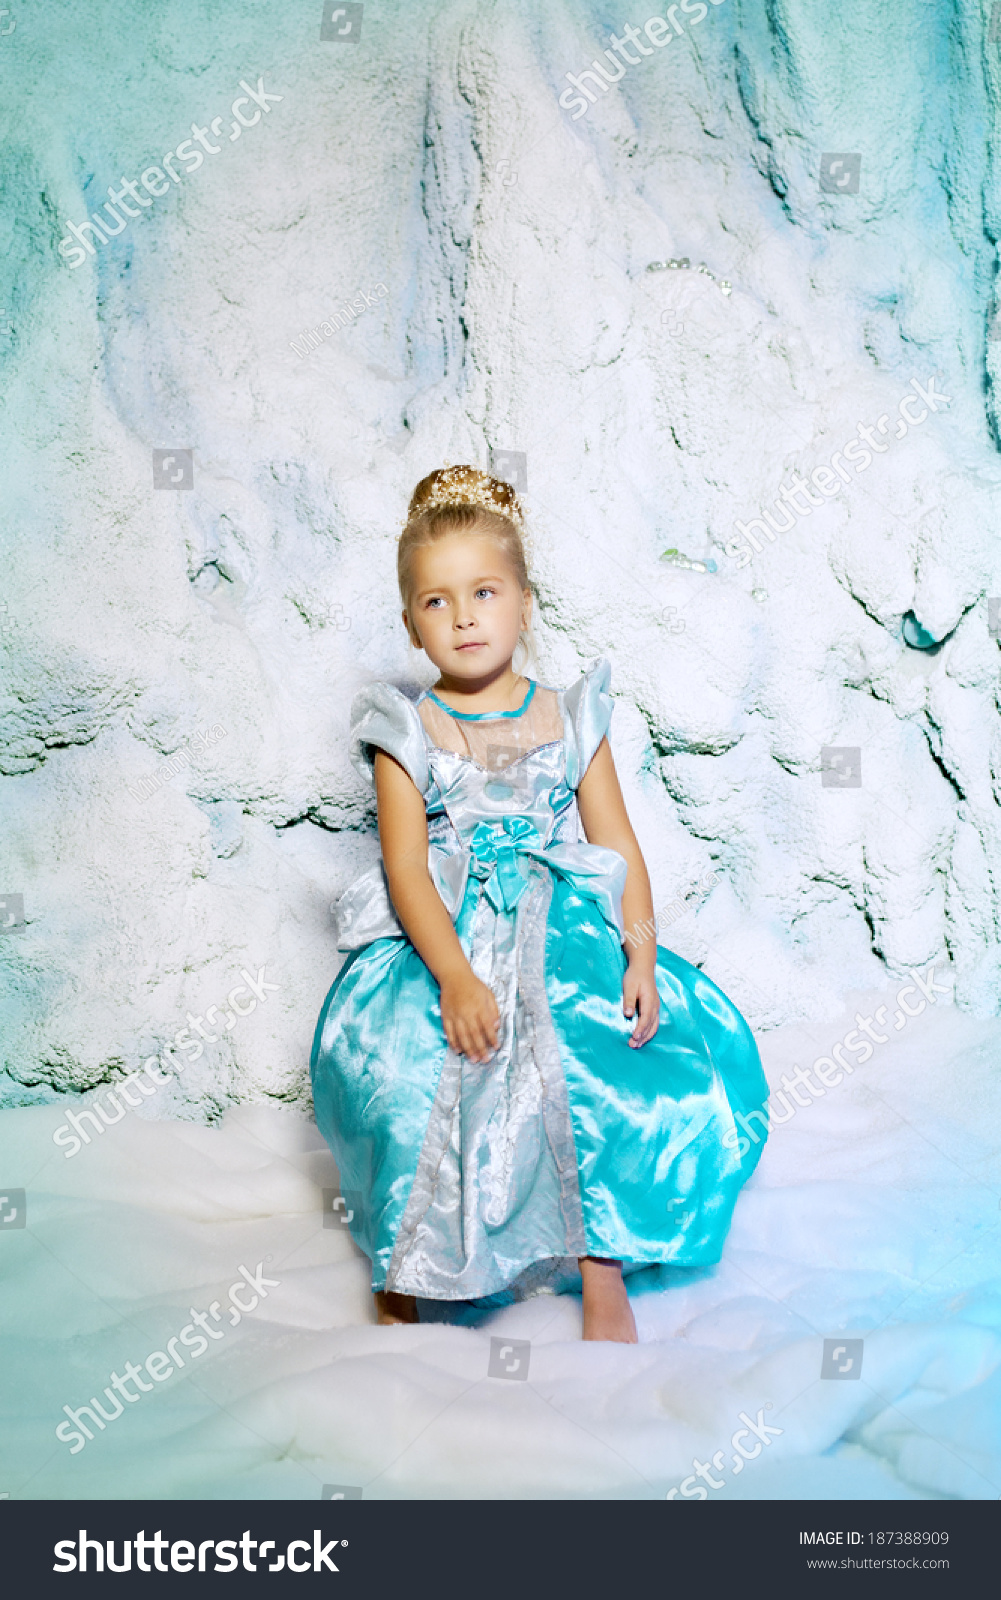 Little girl in princess dress on a background of a winter fairy tale baby snow